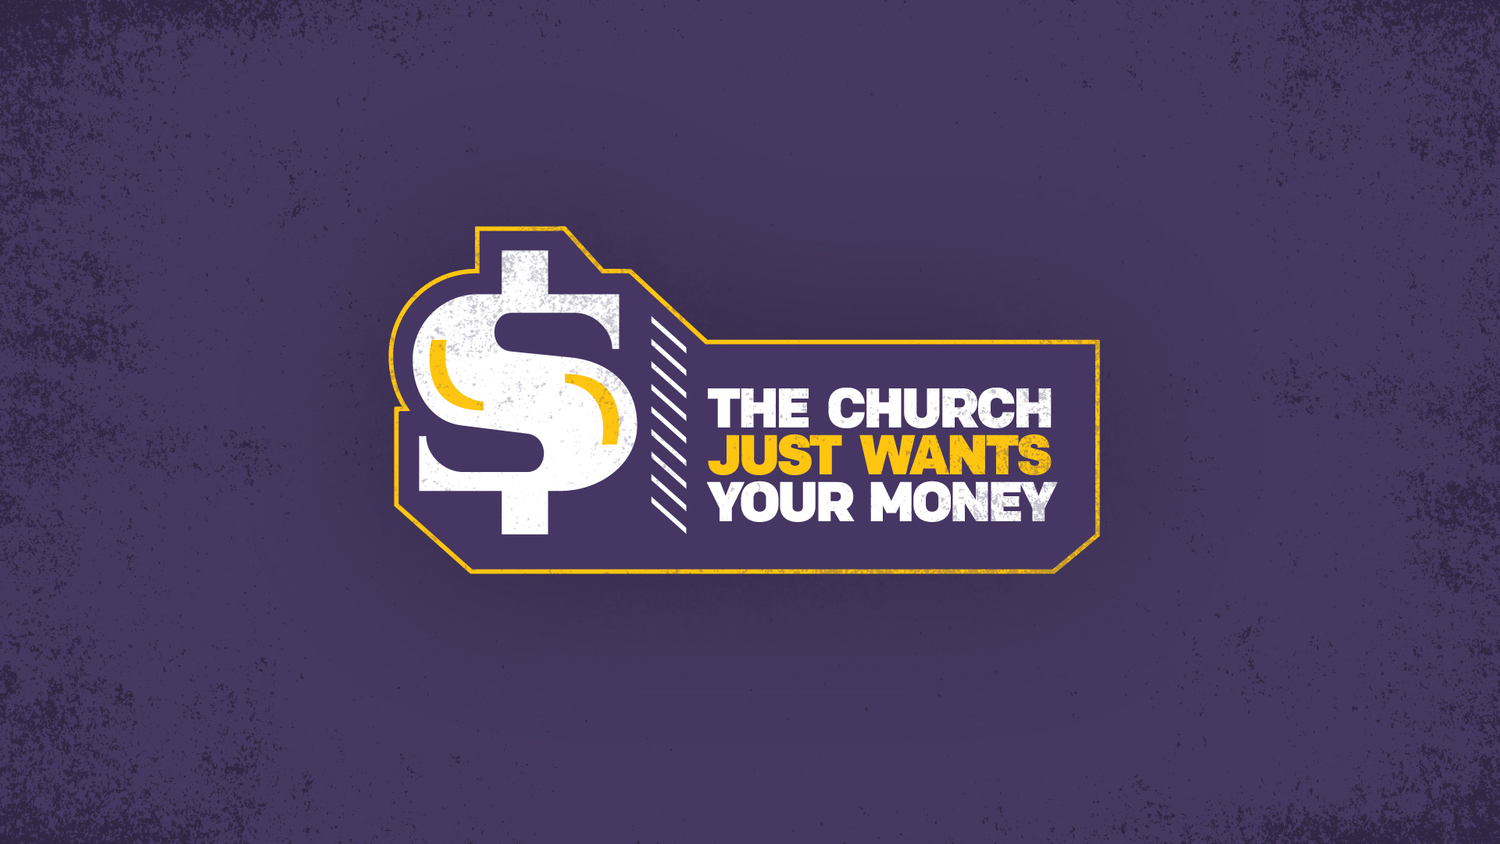 The Church Just Wants Your Money, Part 4: There's A Fly In My Food